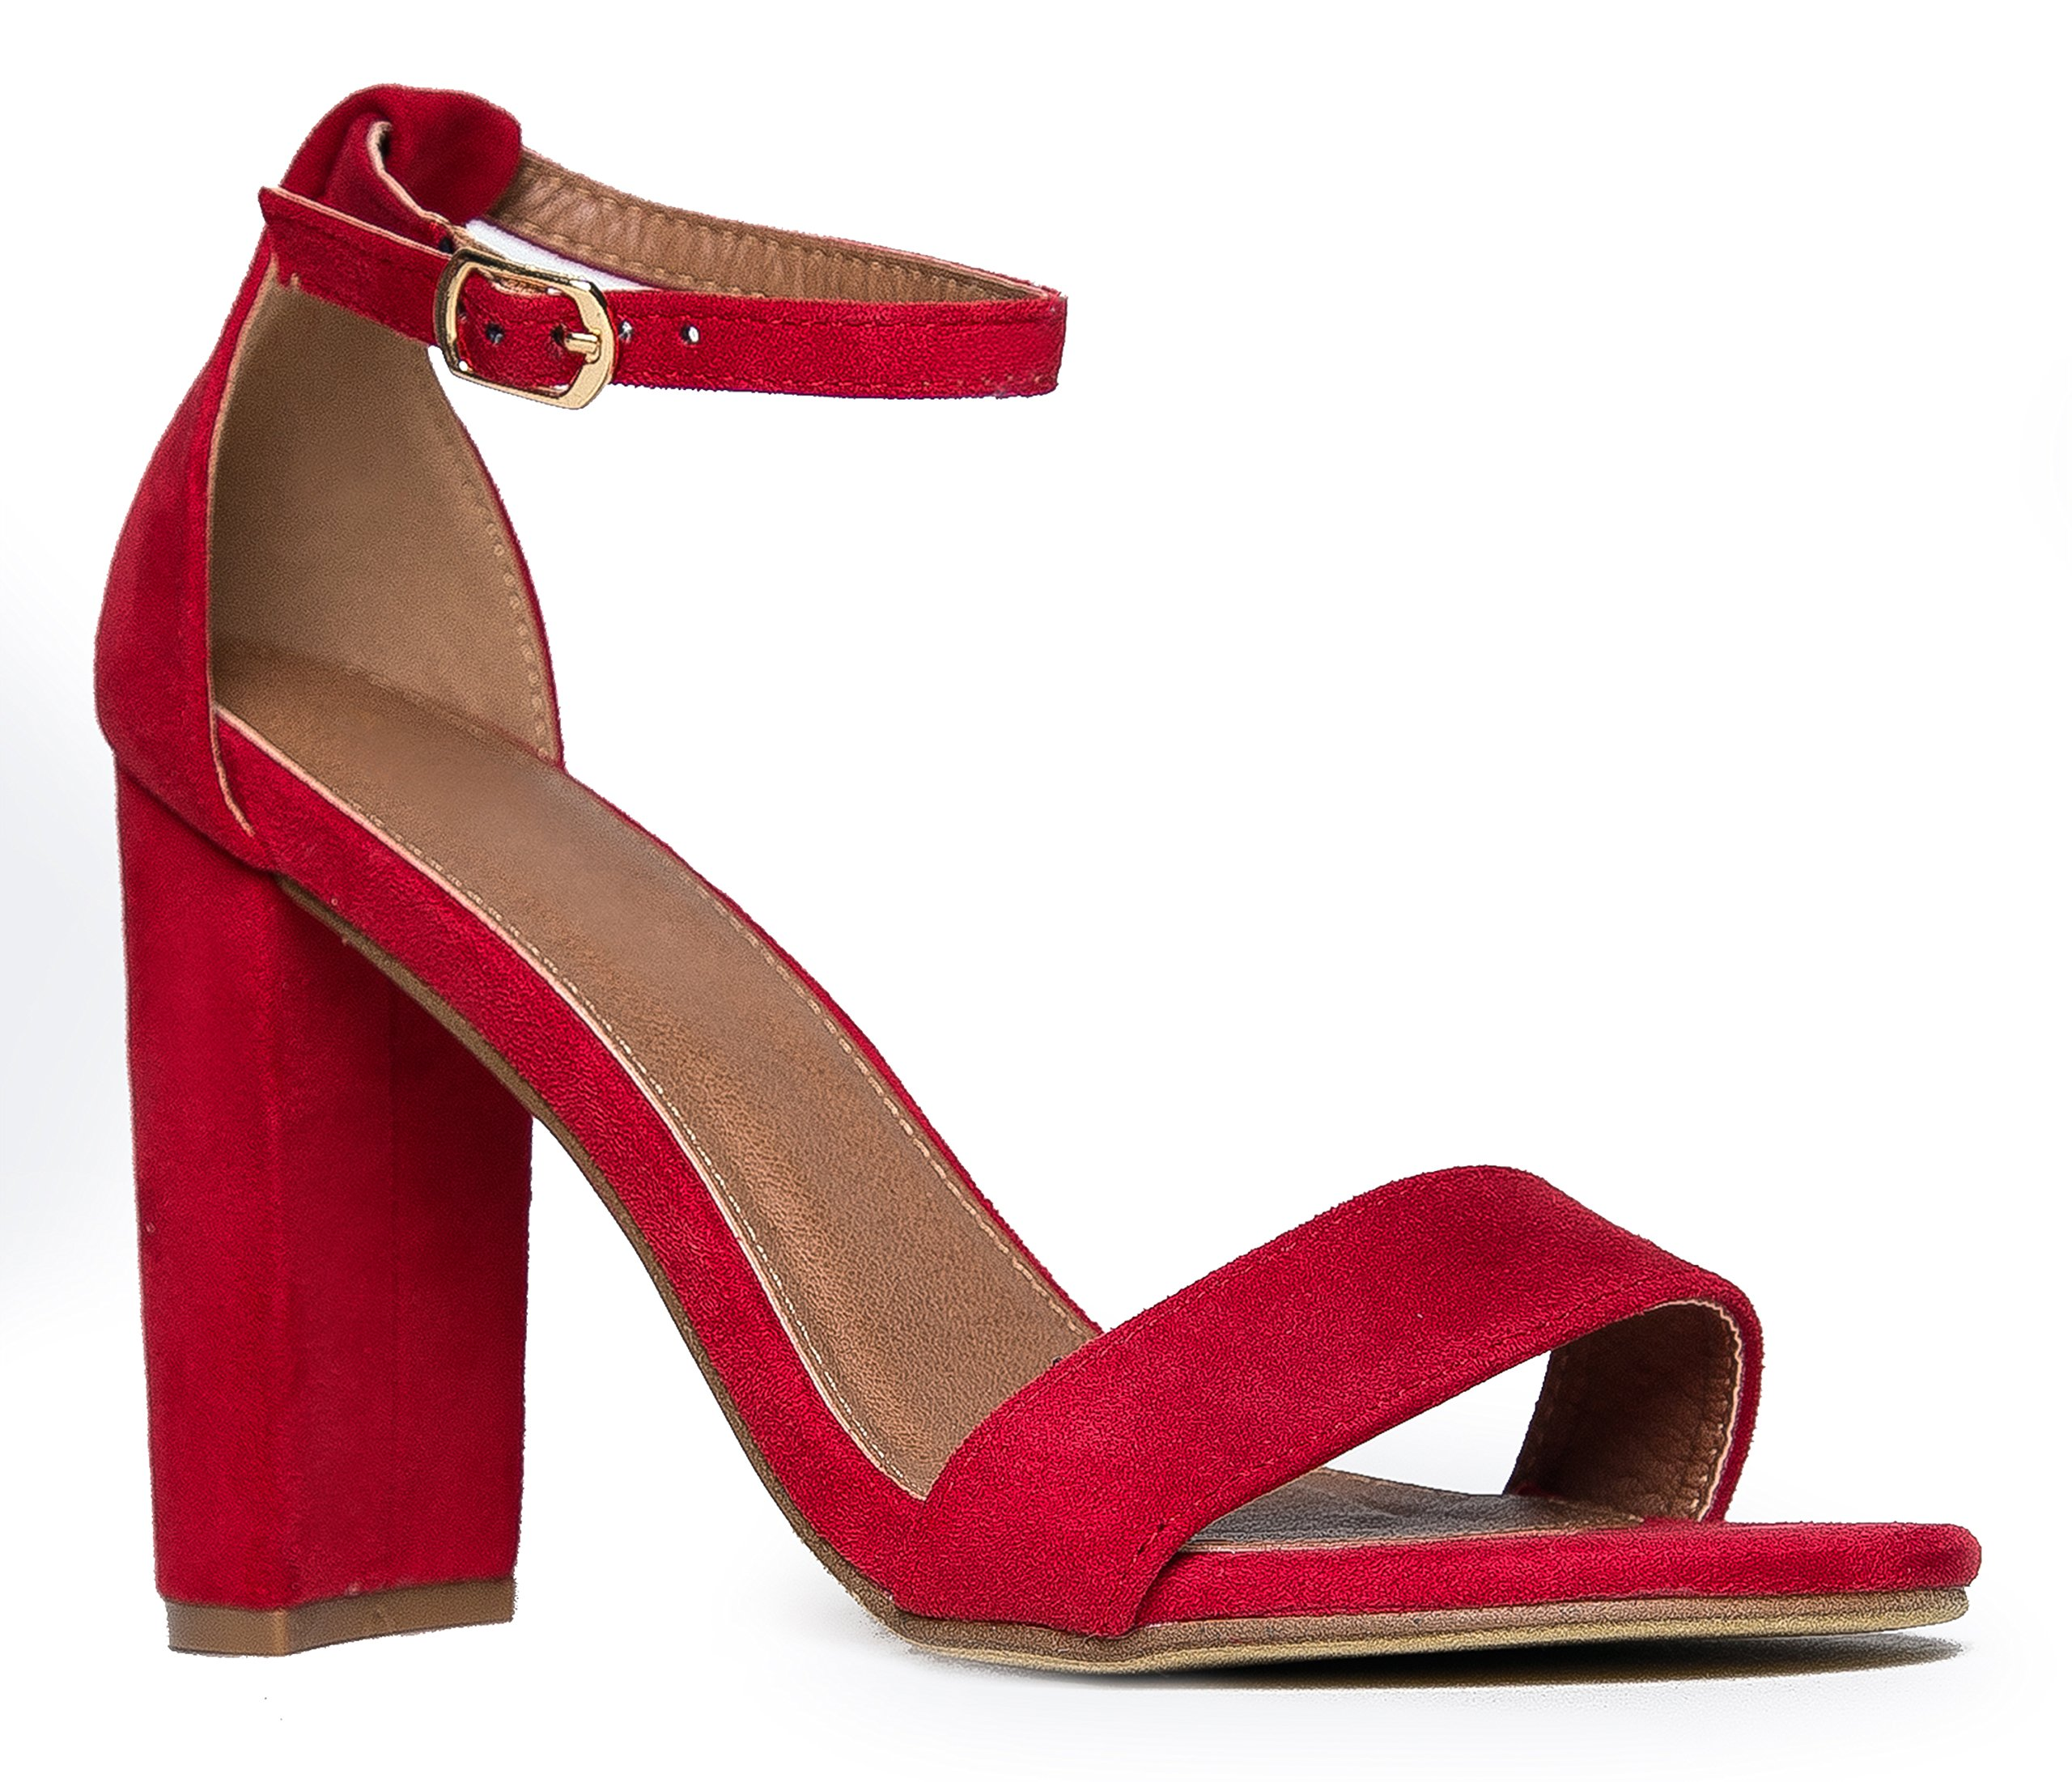 f89545ed1 Strappy Chunky Block High Heel - Formal, Wedding, Party Simple Classic Pump  - Shirley by J.Adams